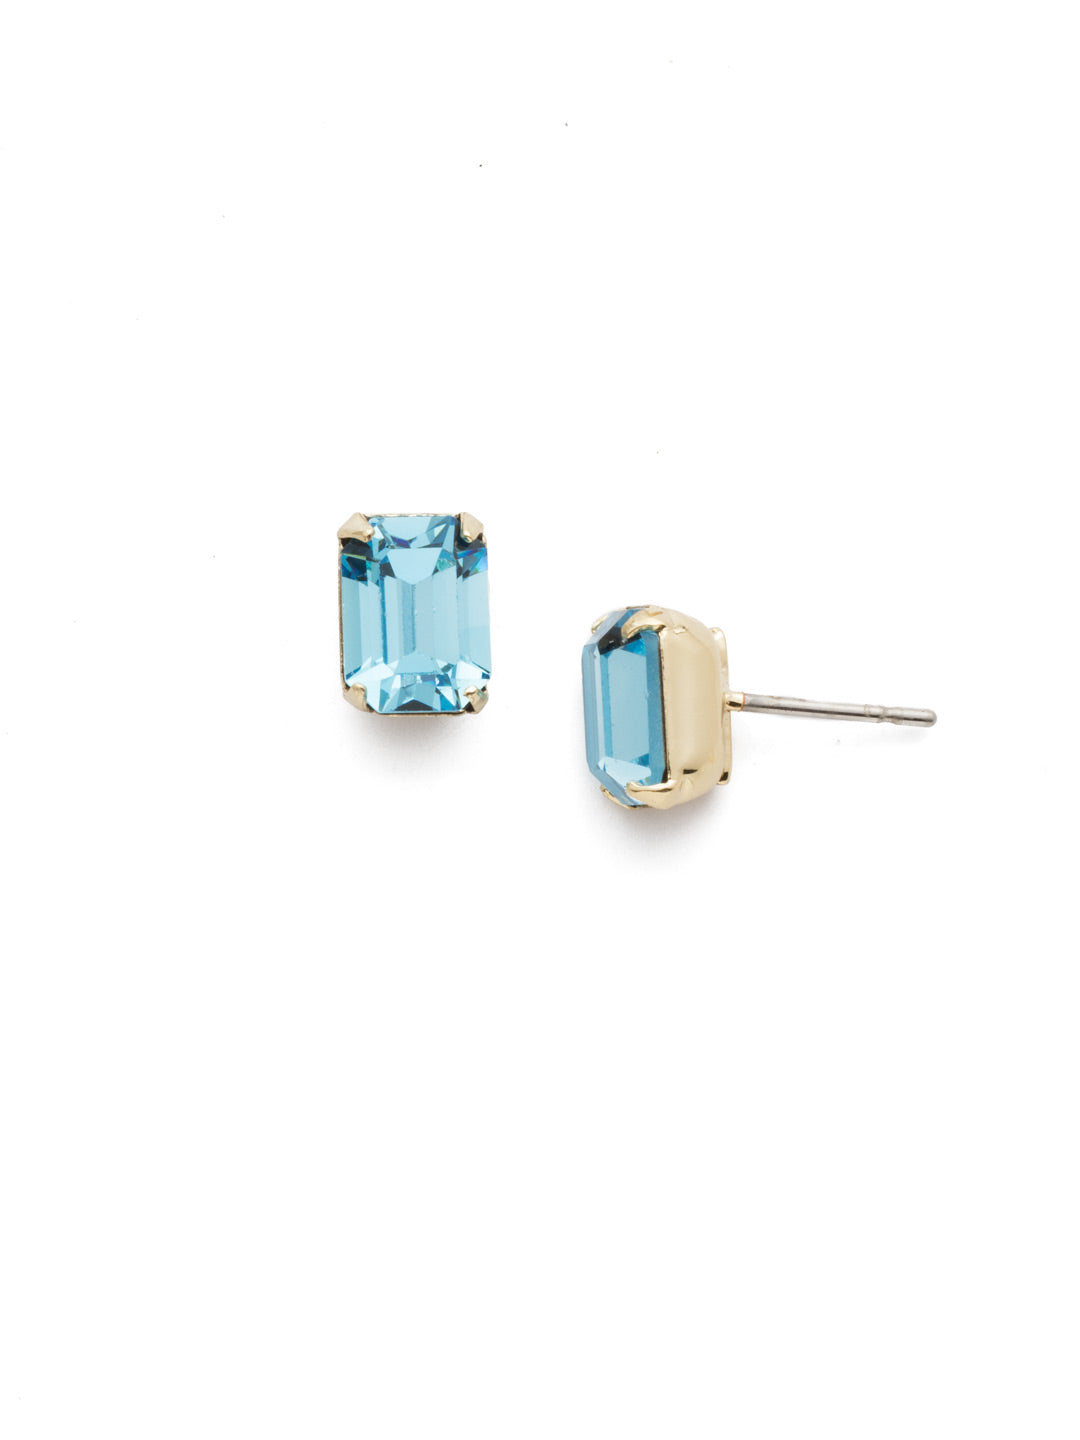 Mini Emerald Cut Stud Earrings - EBY42BGAQU